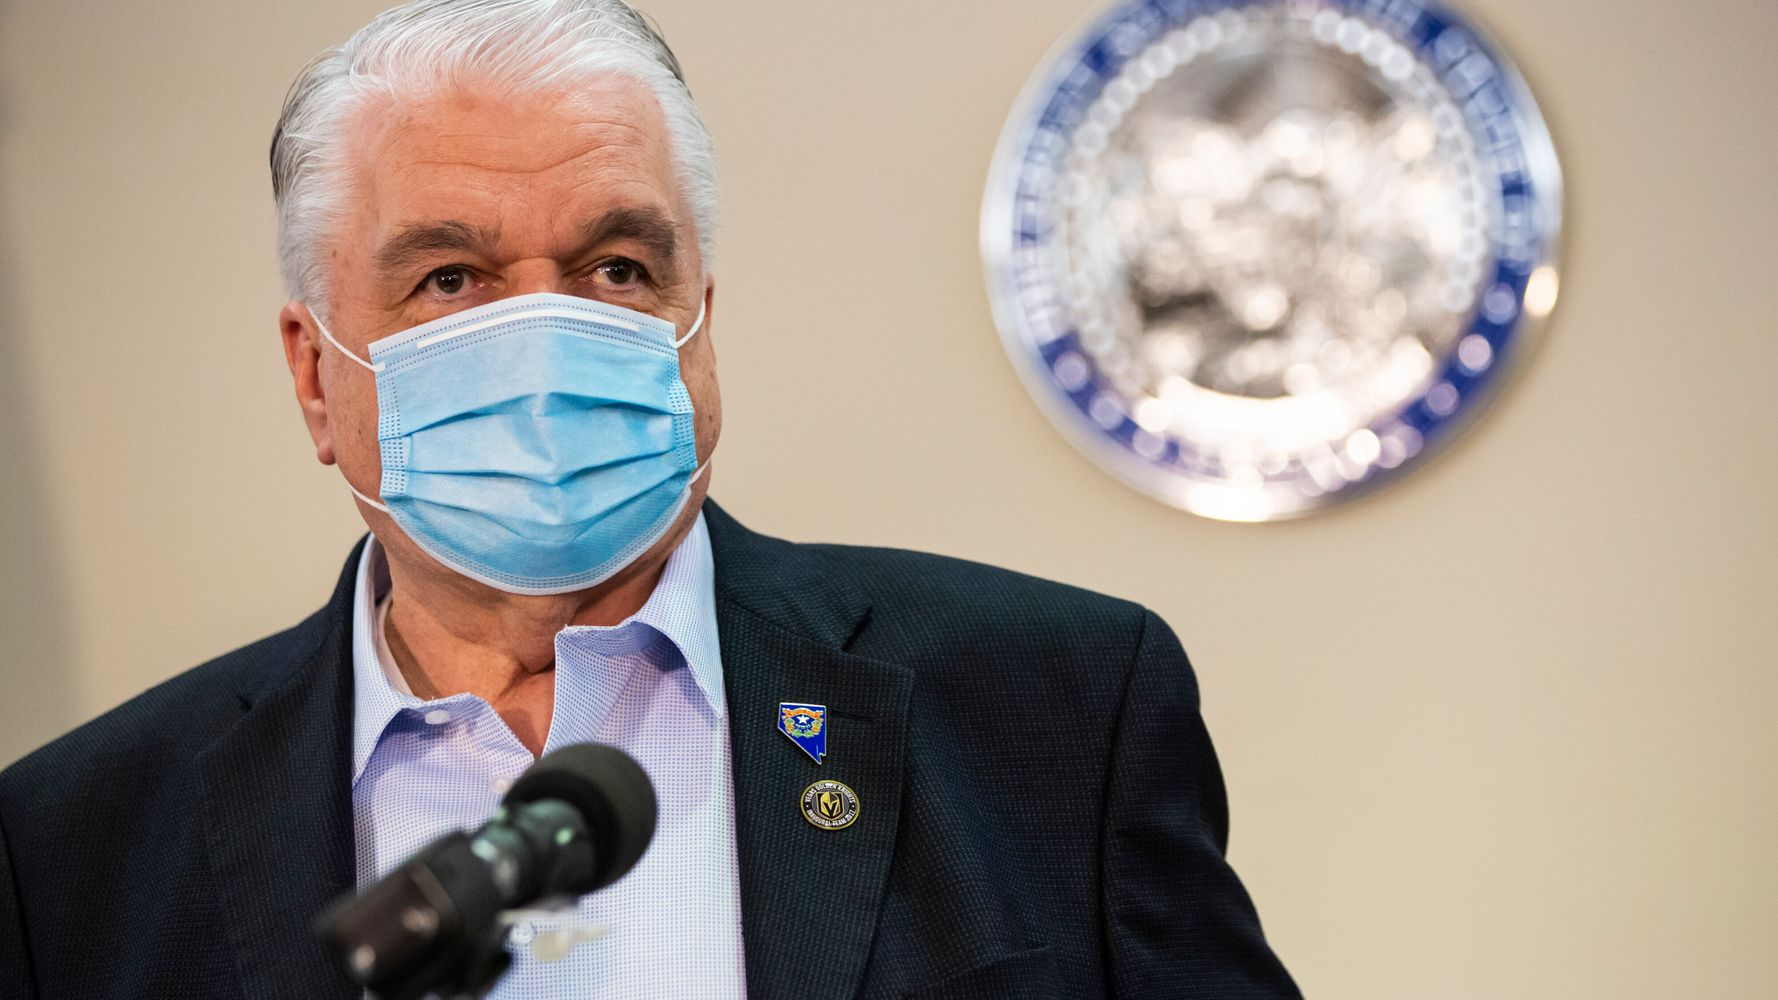 Nevada Governor Steve Sisolak Tests Positive For COVID-19